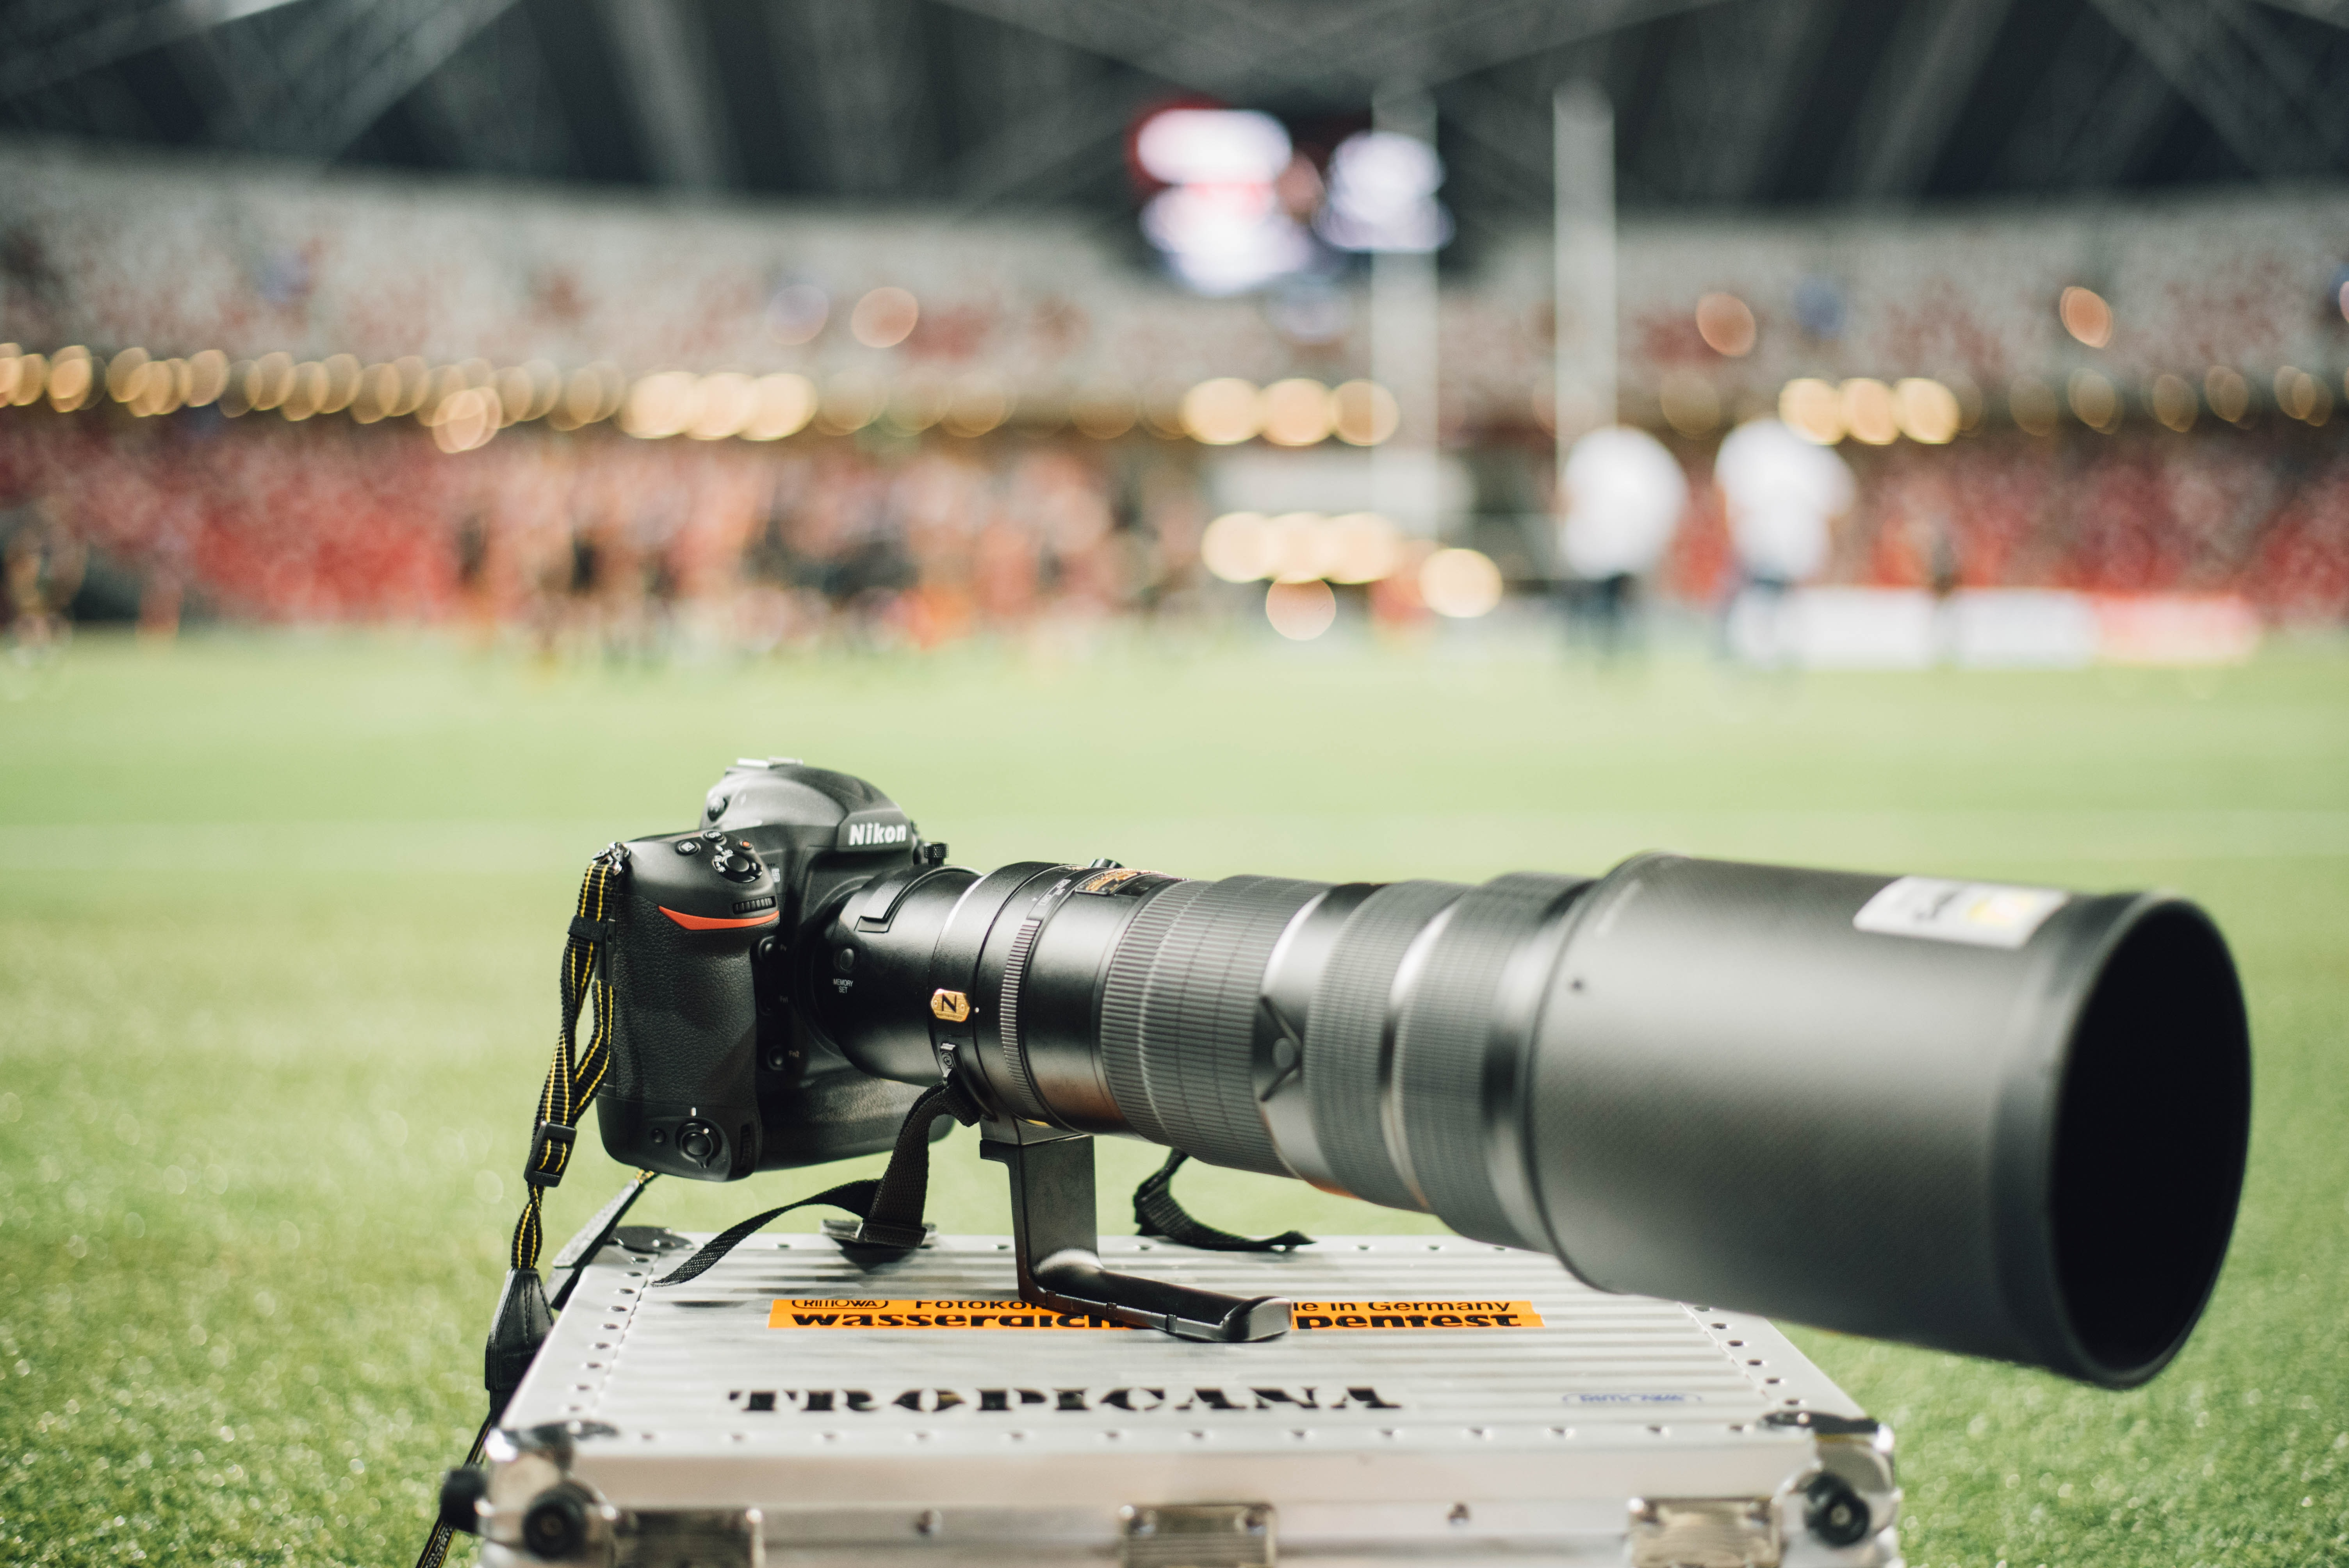 A long-lens camera on a steel crate in a soccer field